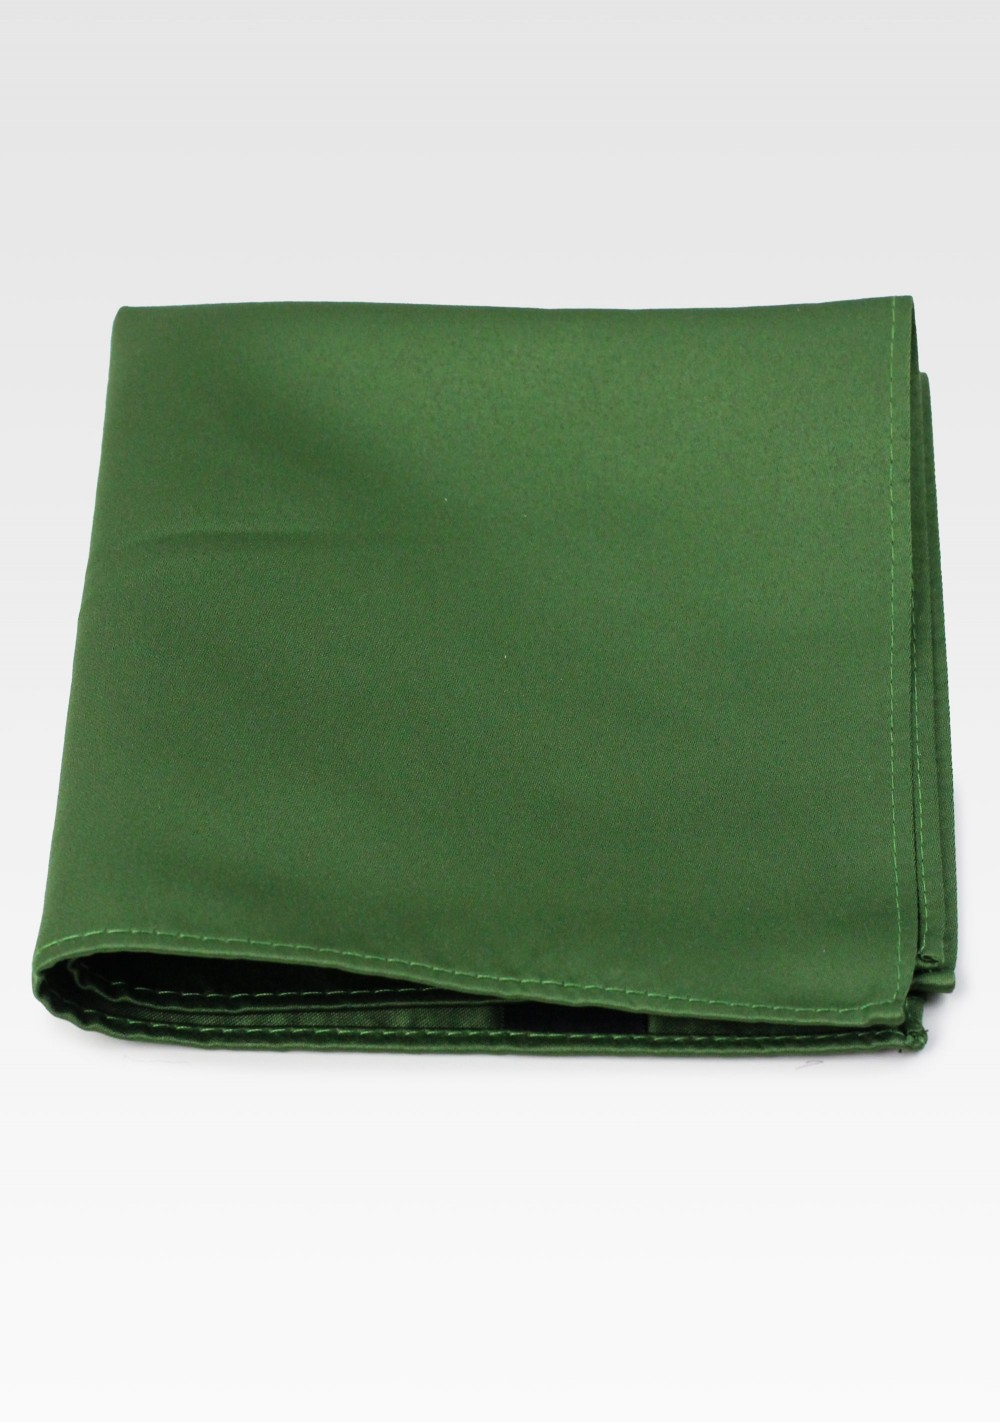 Solid Pocket Square in Moss Green